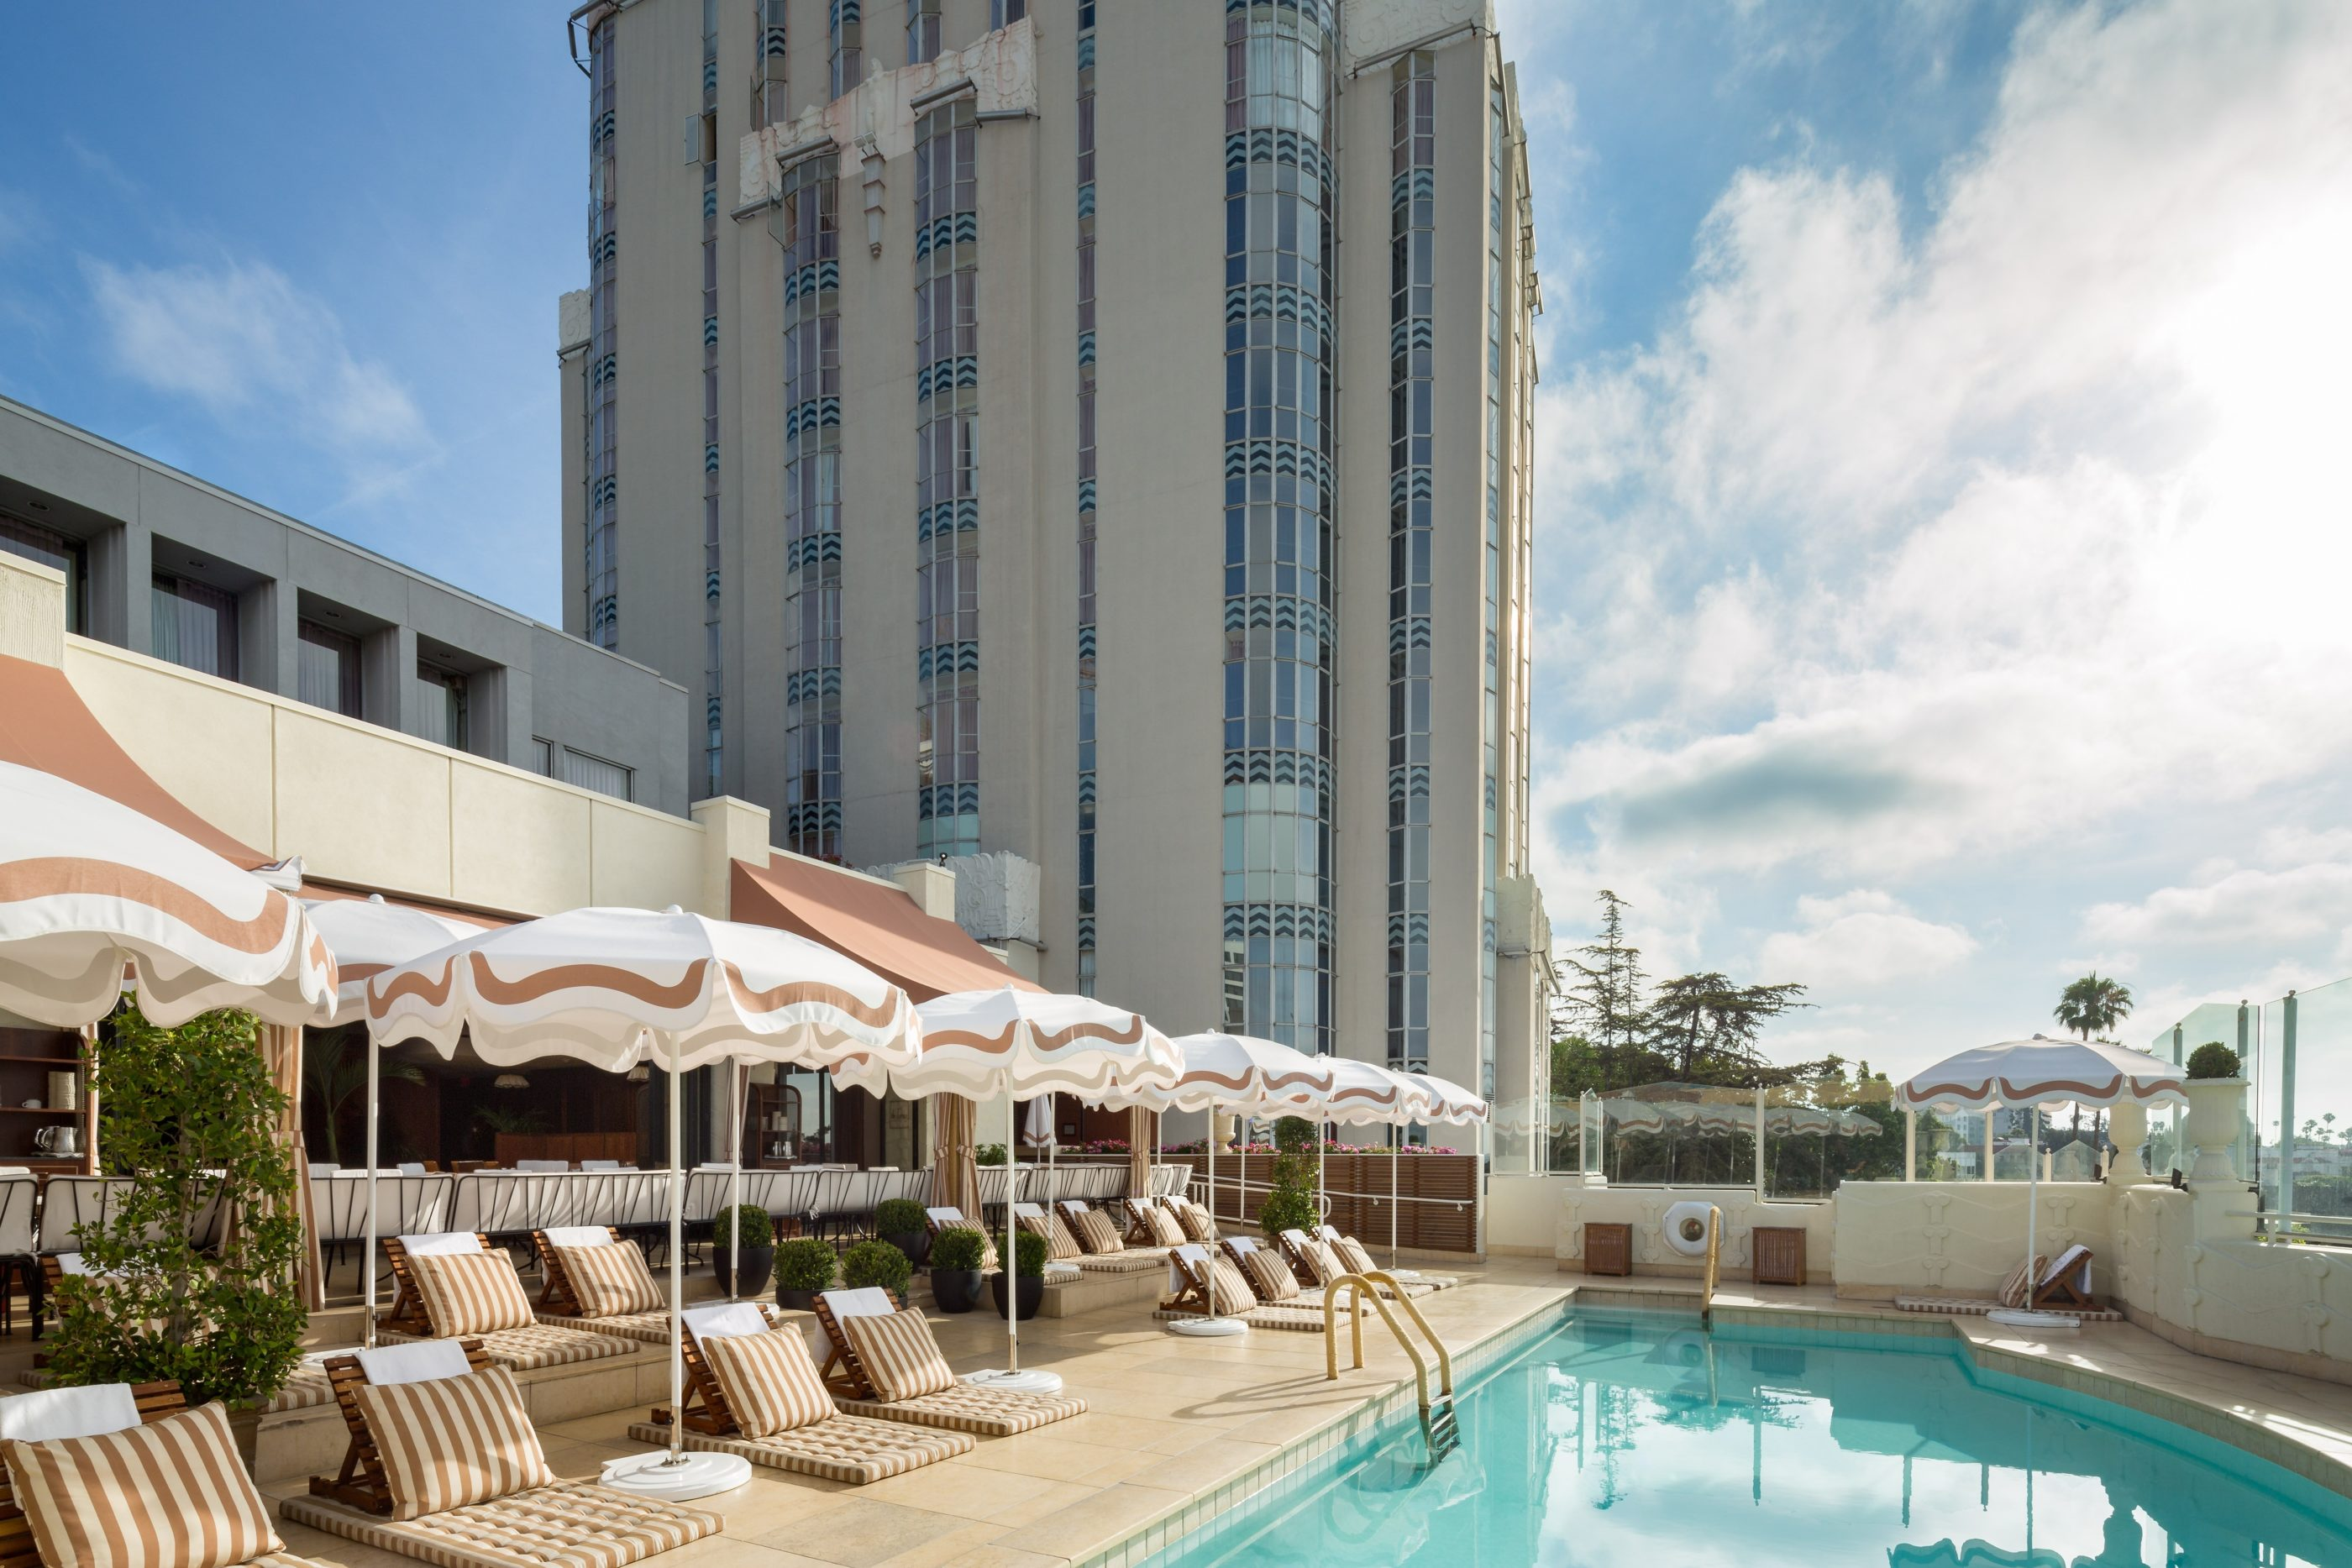 The outdoor pool deck on a sunny day surrounded by beige and white striped lounge chairs and umbrellas.